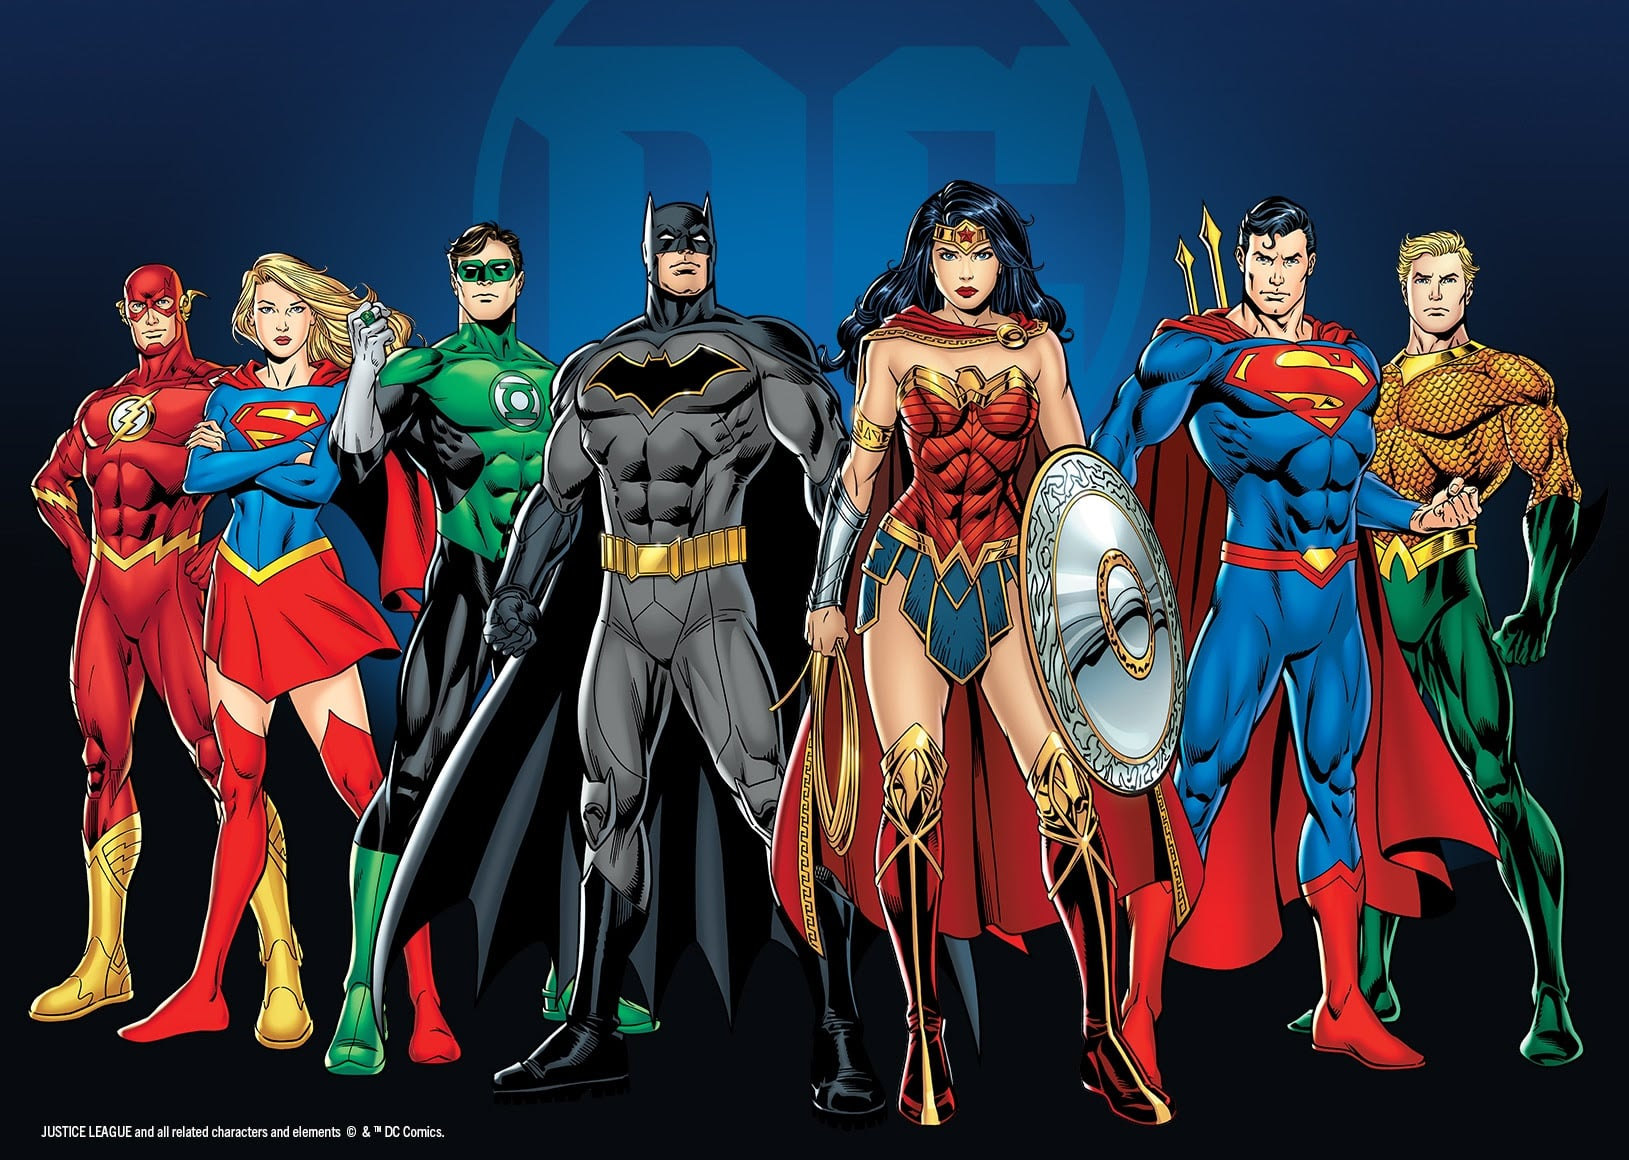 """McFarlane Toys and DC Comics announced today that they're partnering to produce a line of 6""""-12"""" """"ultra-posable actions figures,"""" accessories, and vehicles. McFarlane has been granted a three-year license to produce the figures and collectibles. The news comes on the heels of yesterday's announcement from McFarlane that they will also be producing a line of Harry Potter action figures. Warner Bros. is the parent company for both DC and Harry Potter."""